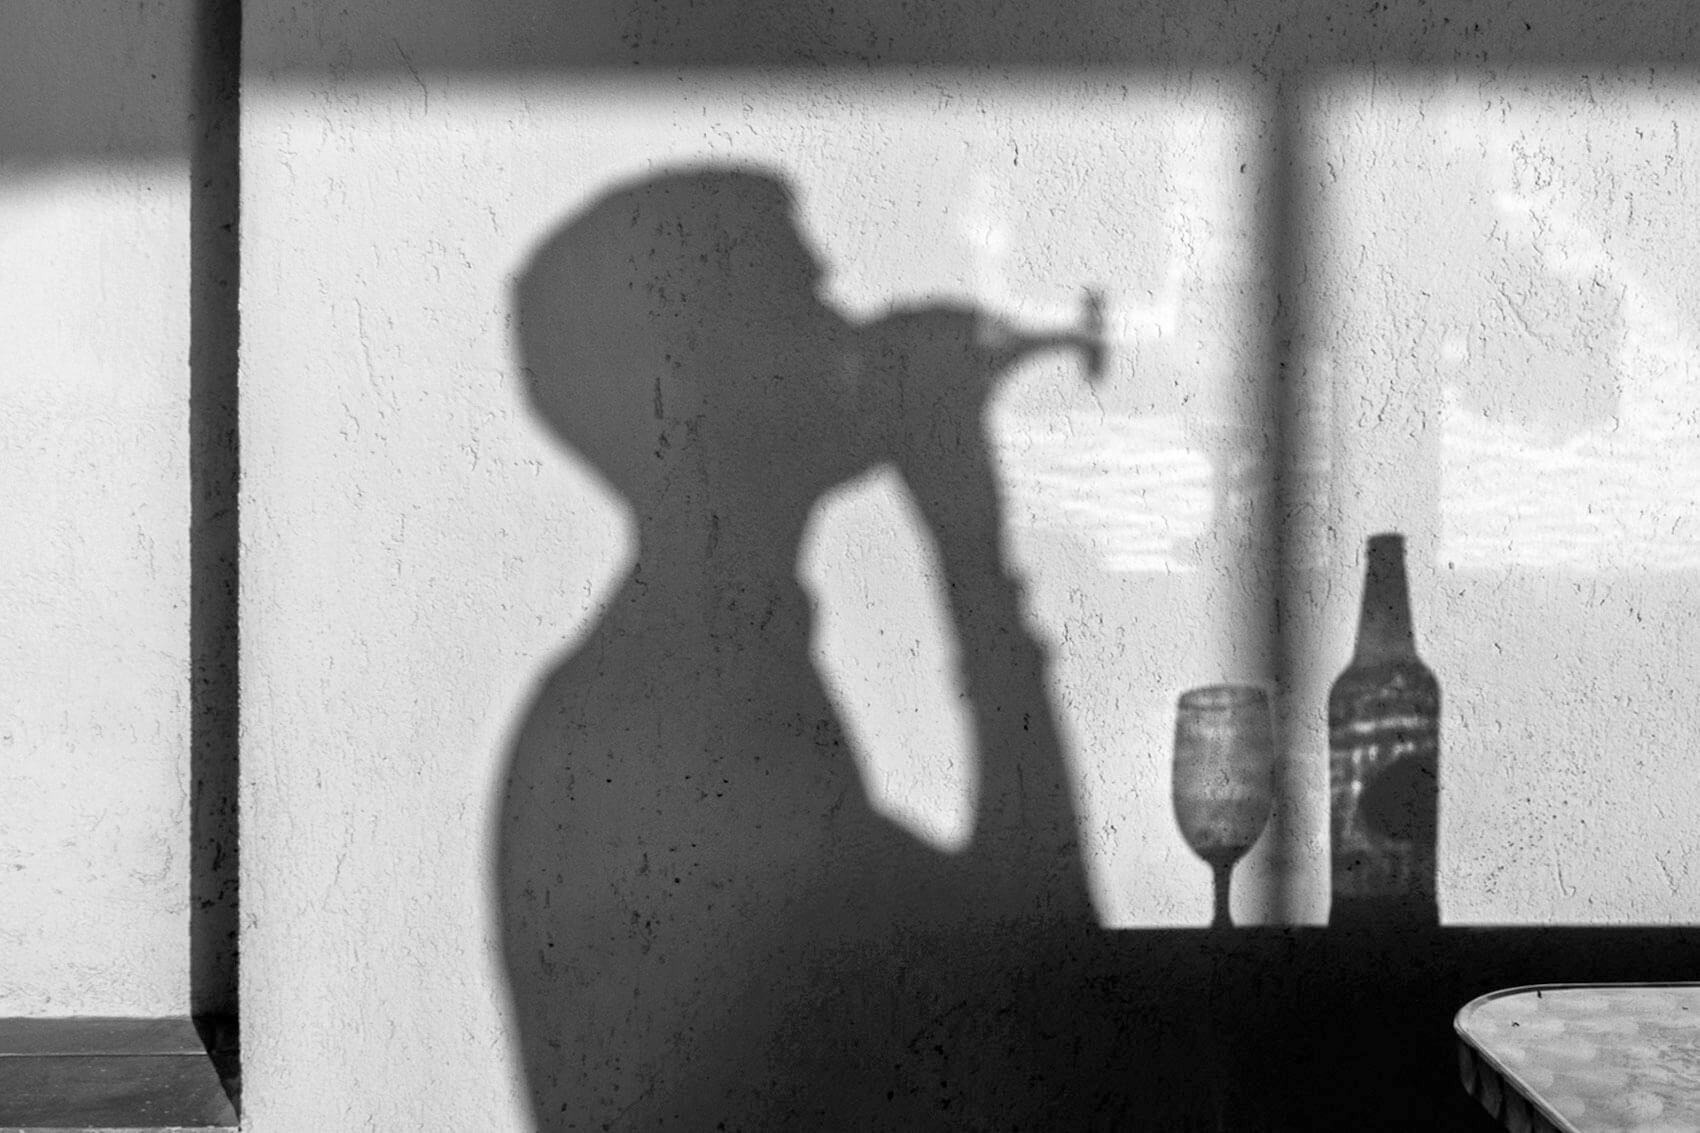 Man drinking beer and his shadow on the wall